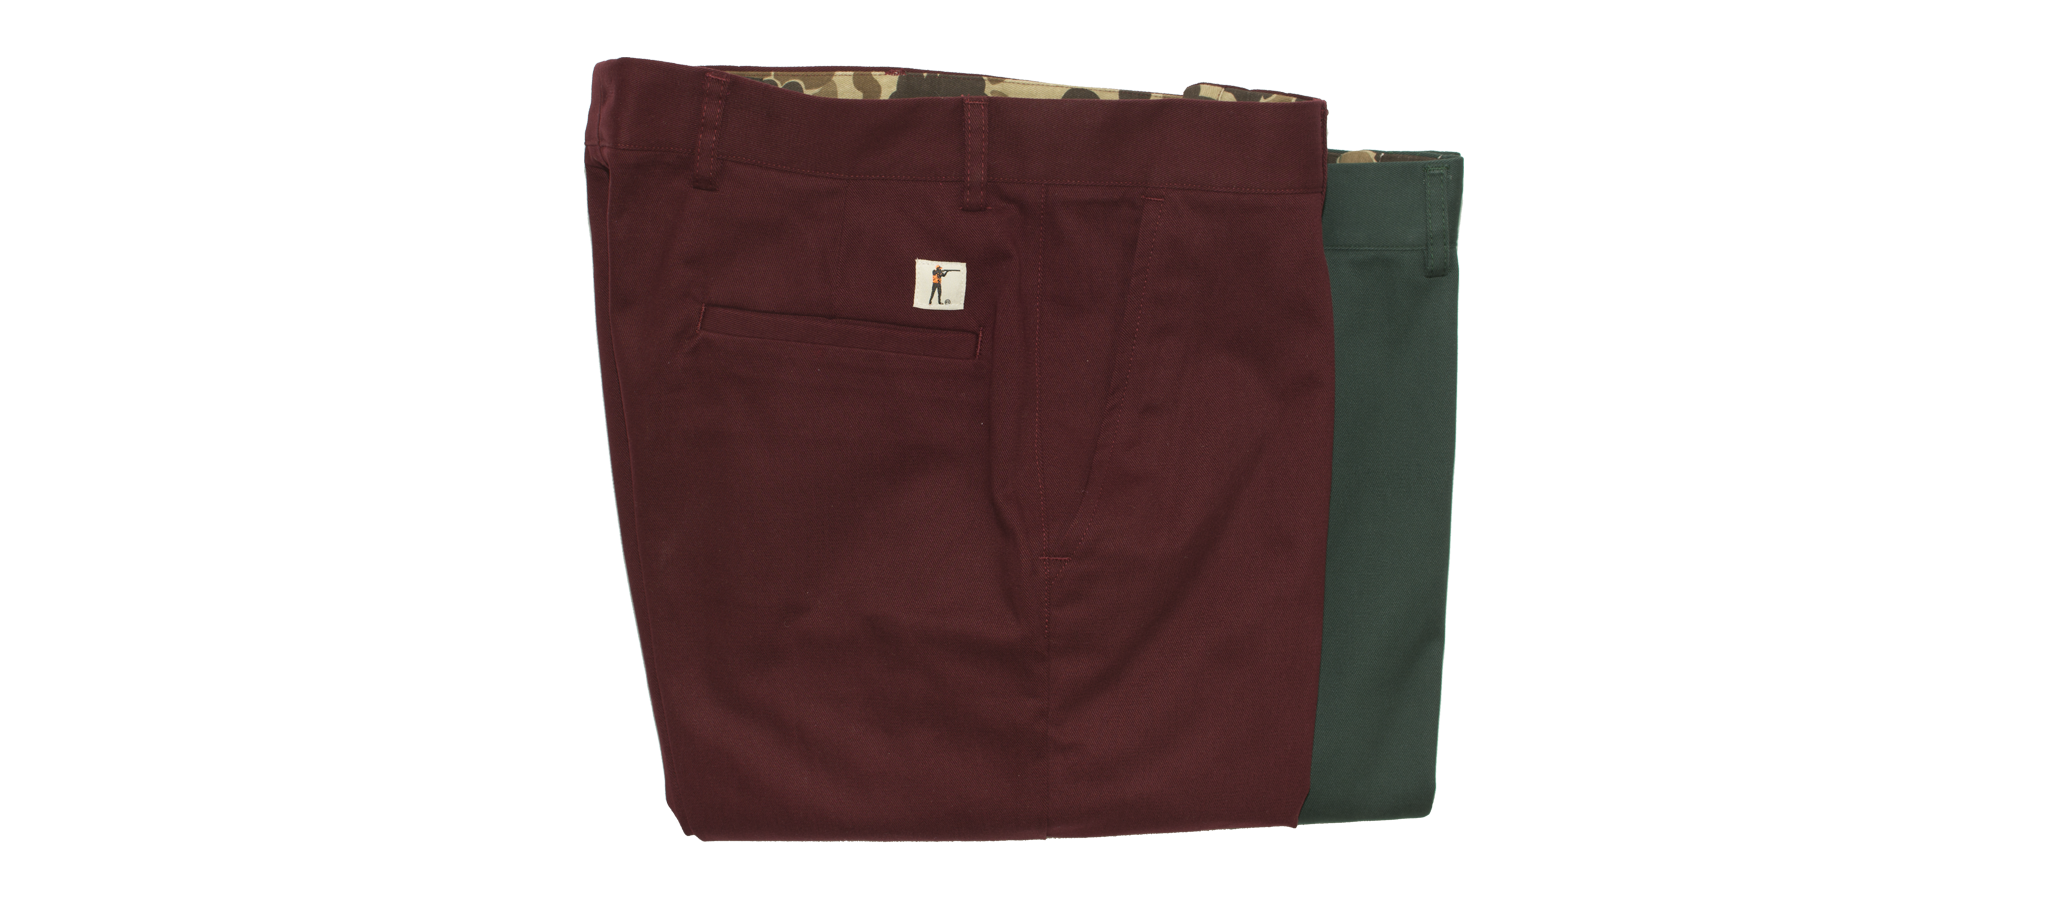 The 6 Point Pant | Holiday 2013